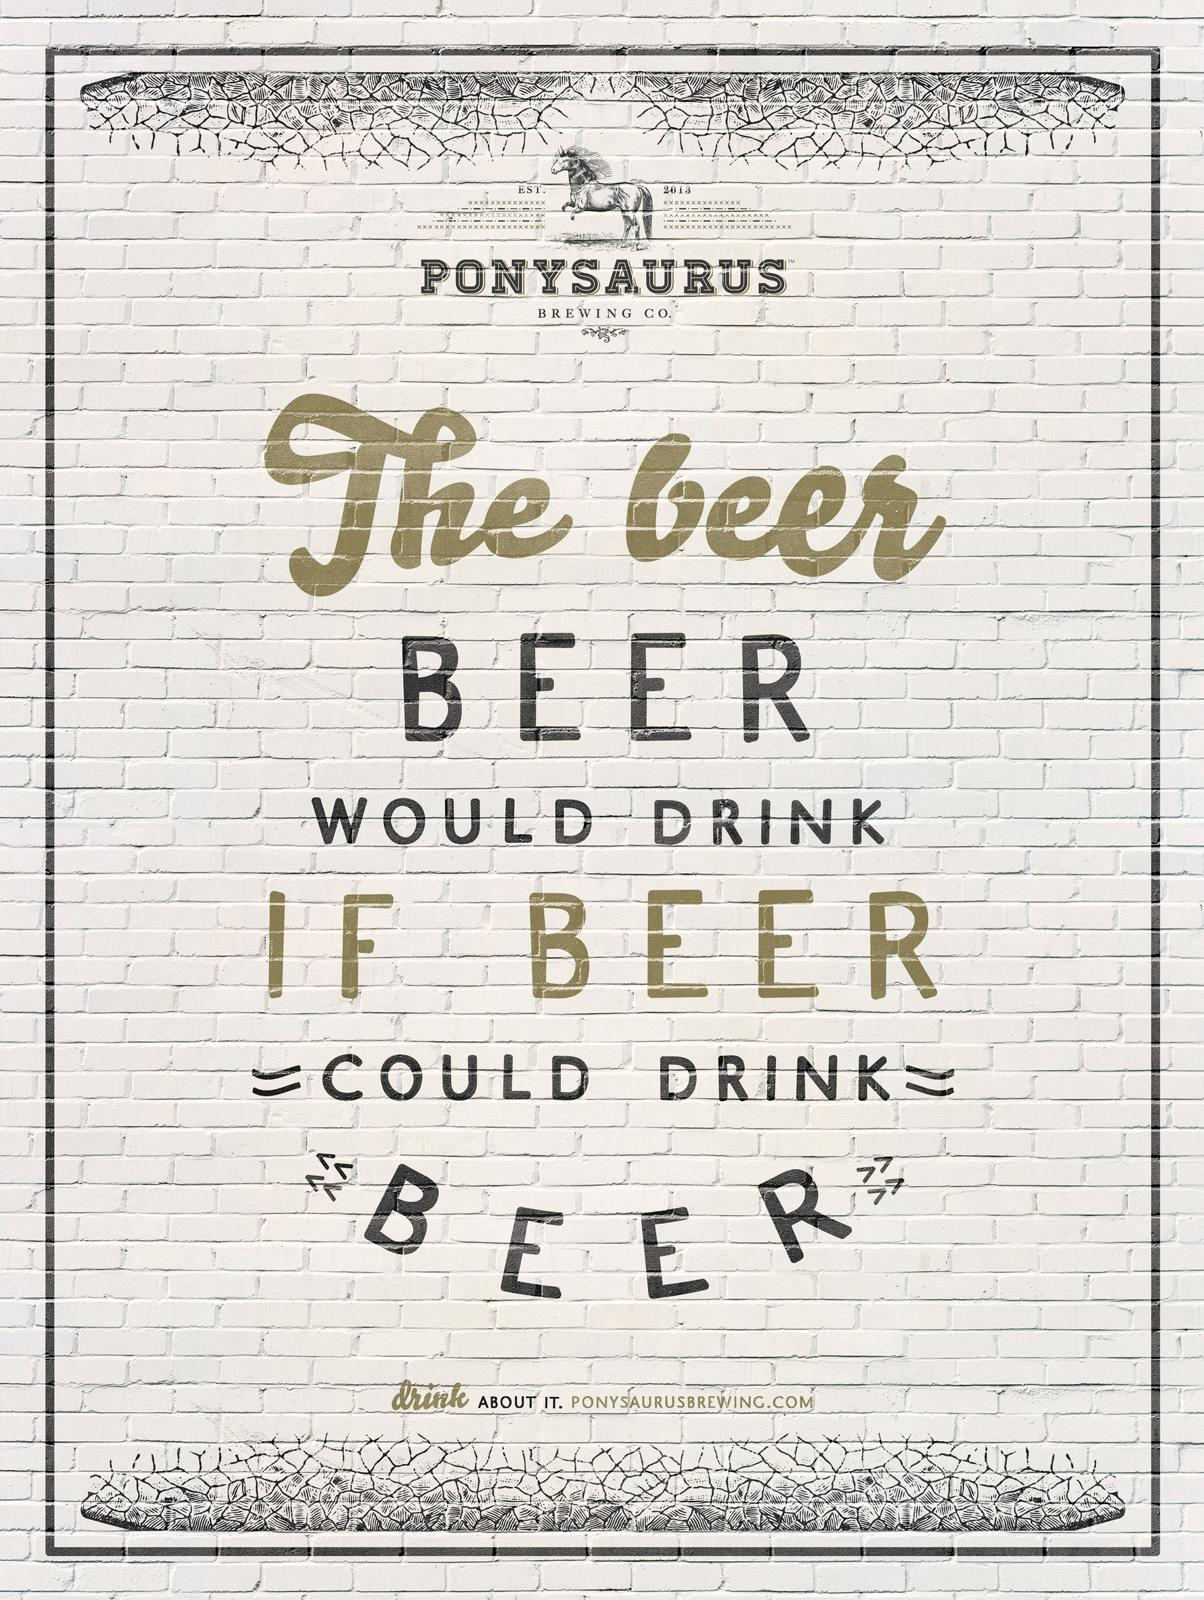 Beer Would